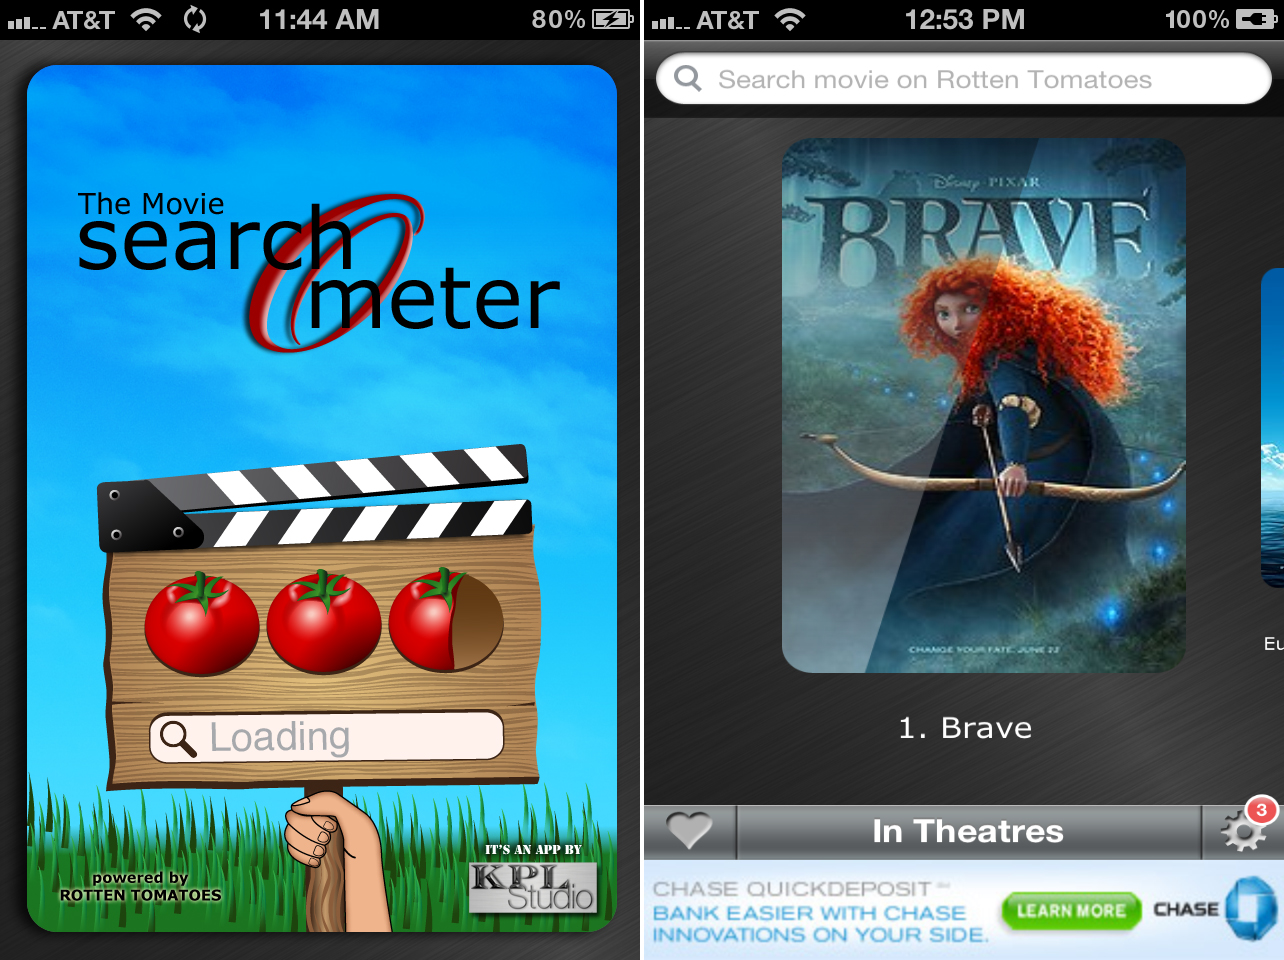 A Chance To Win An iTunes Gift Card To Unlock The Full Potential Of The Movie searchOmeter